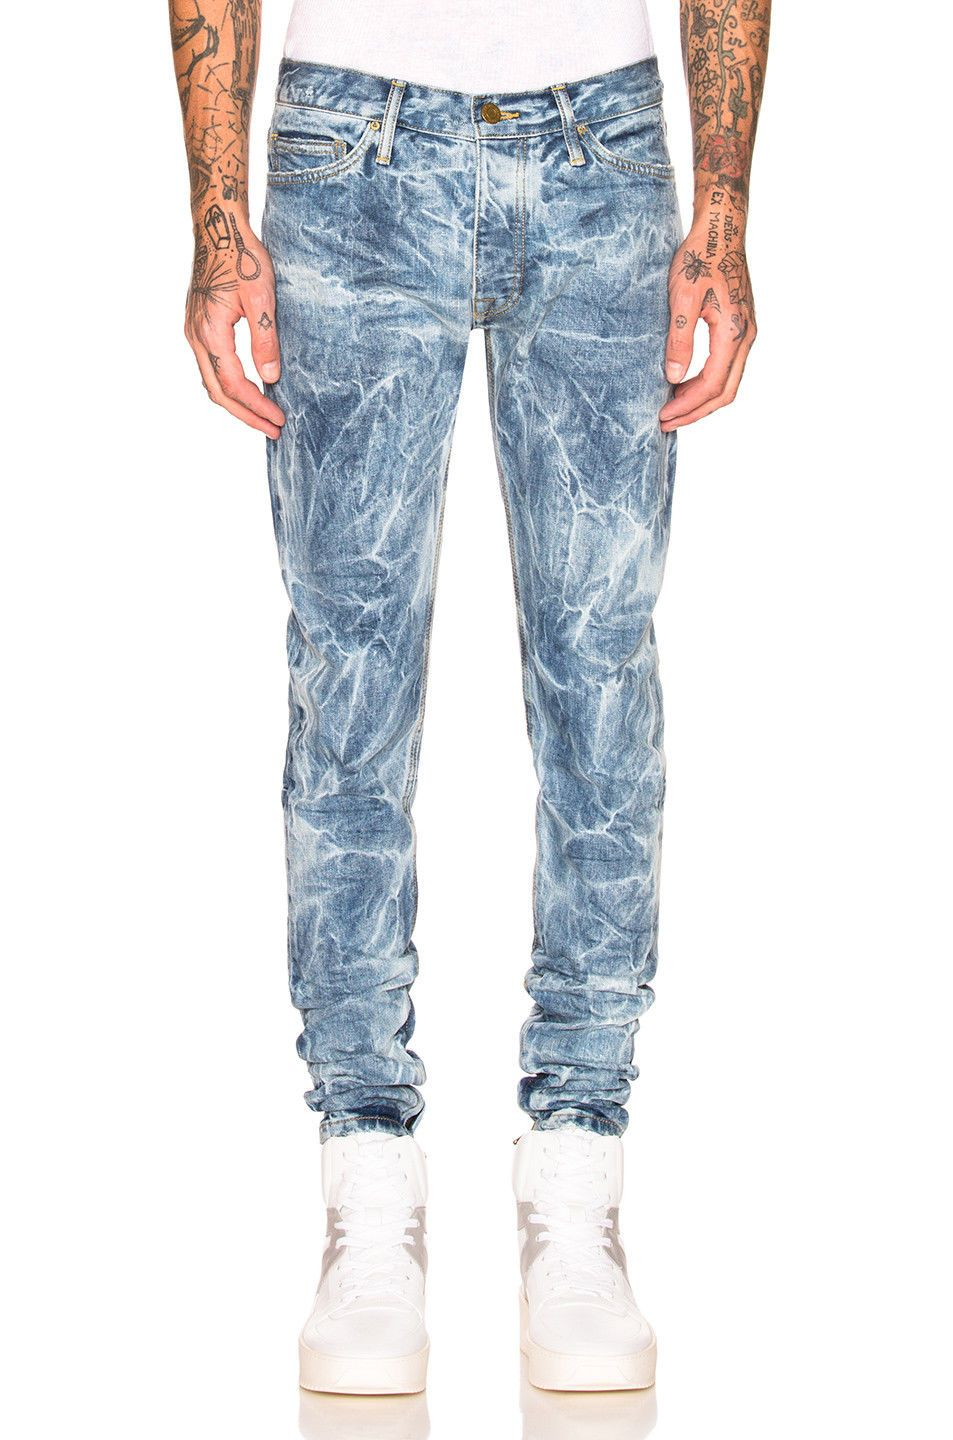 Fear of God FOG Selvedge Denim Holy Water Jeans White Size ...